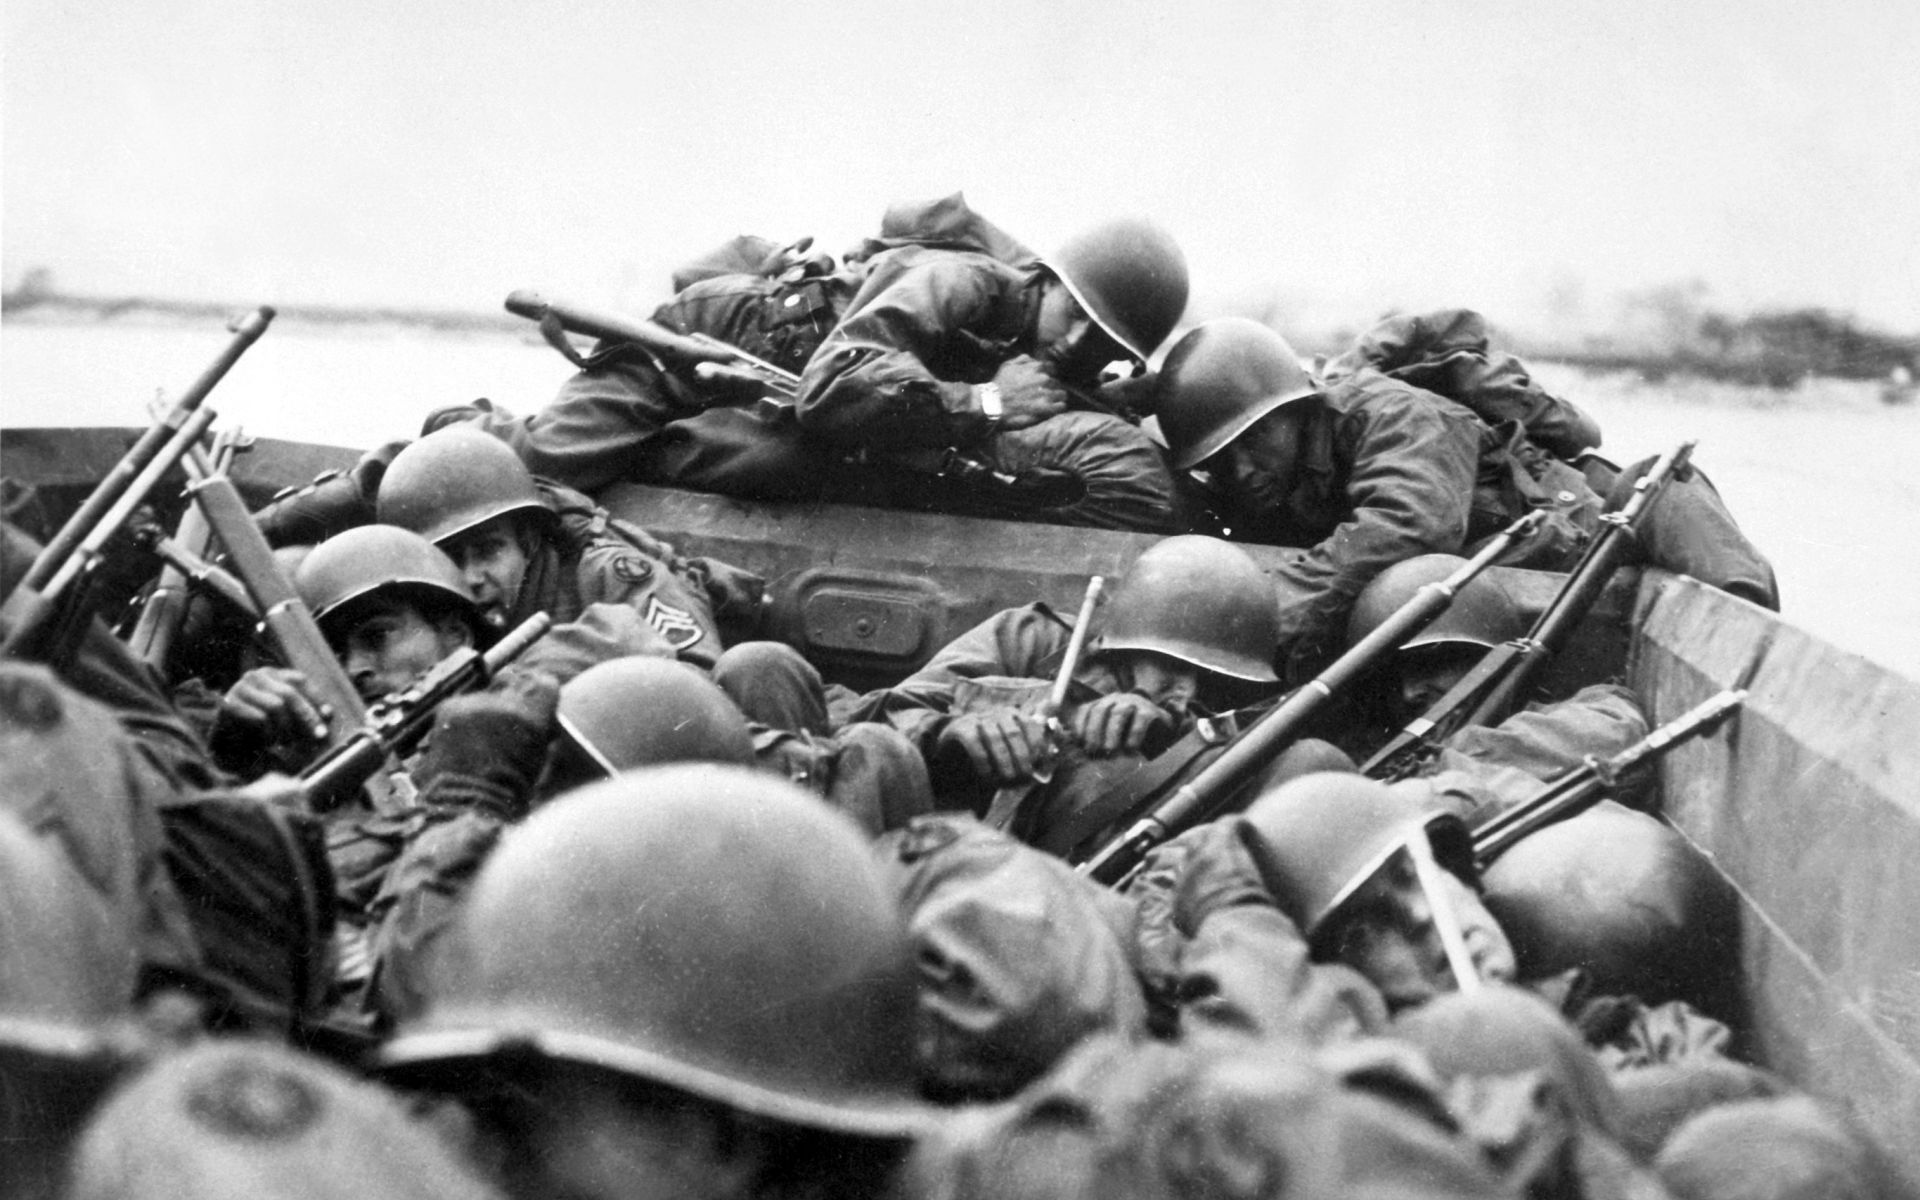 D Day HD Wallpaper Background Image 1920x1200 ID13379 1920x1200